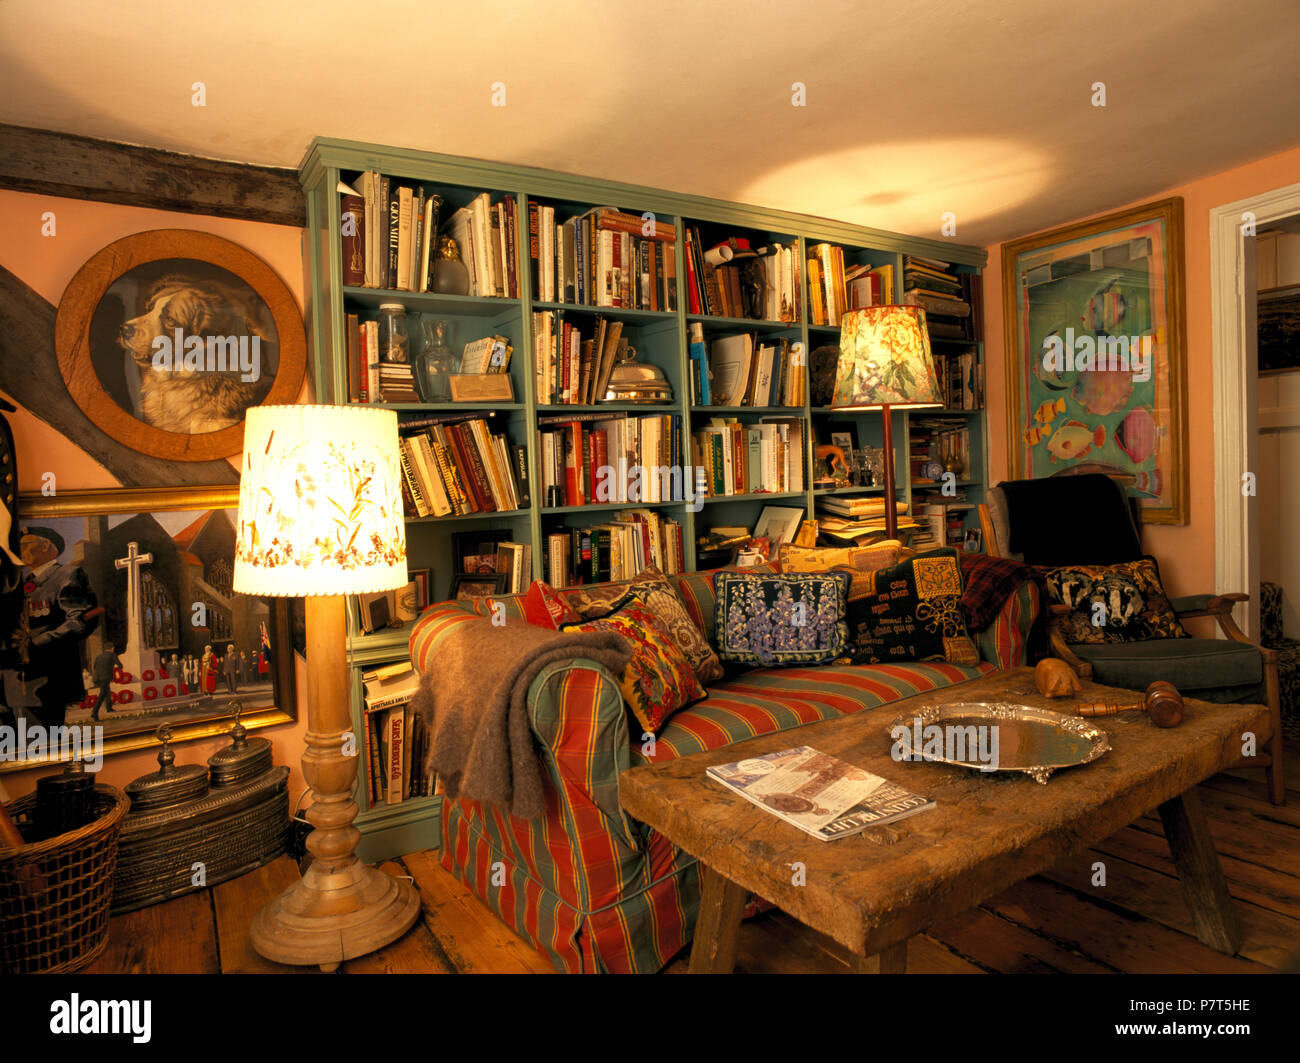 Astounding Green Bookshelves In Cluttered And Old Fashioned Cottage Download Free Architecture Designs Embacsunscenecom